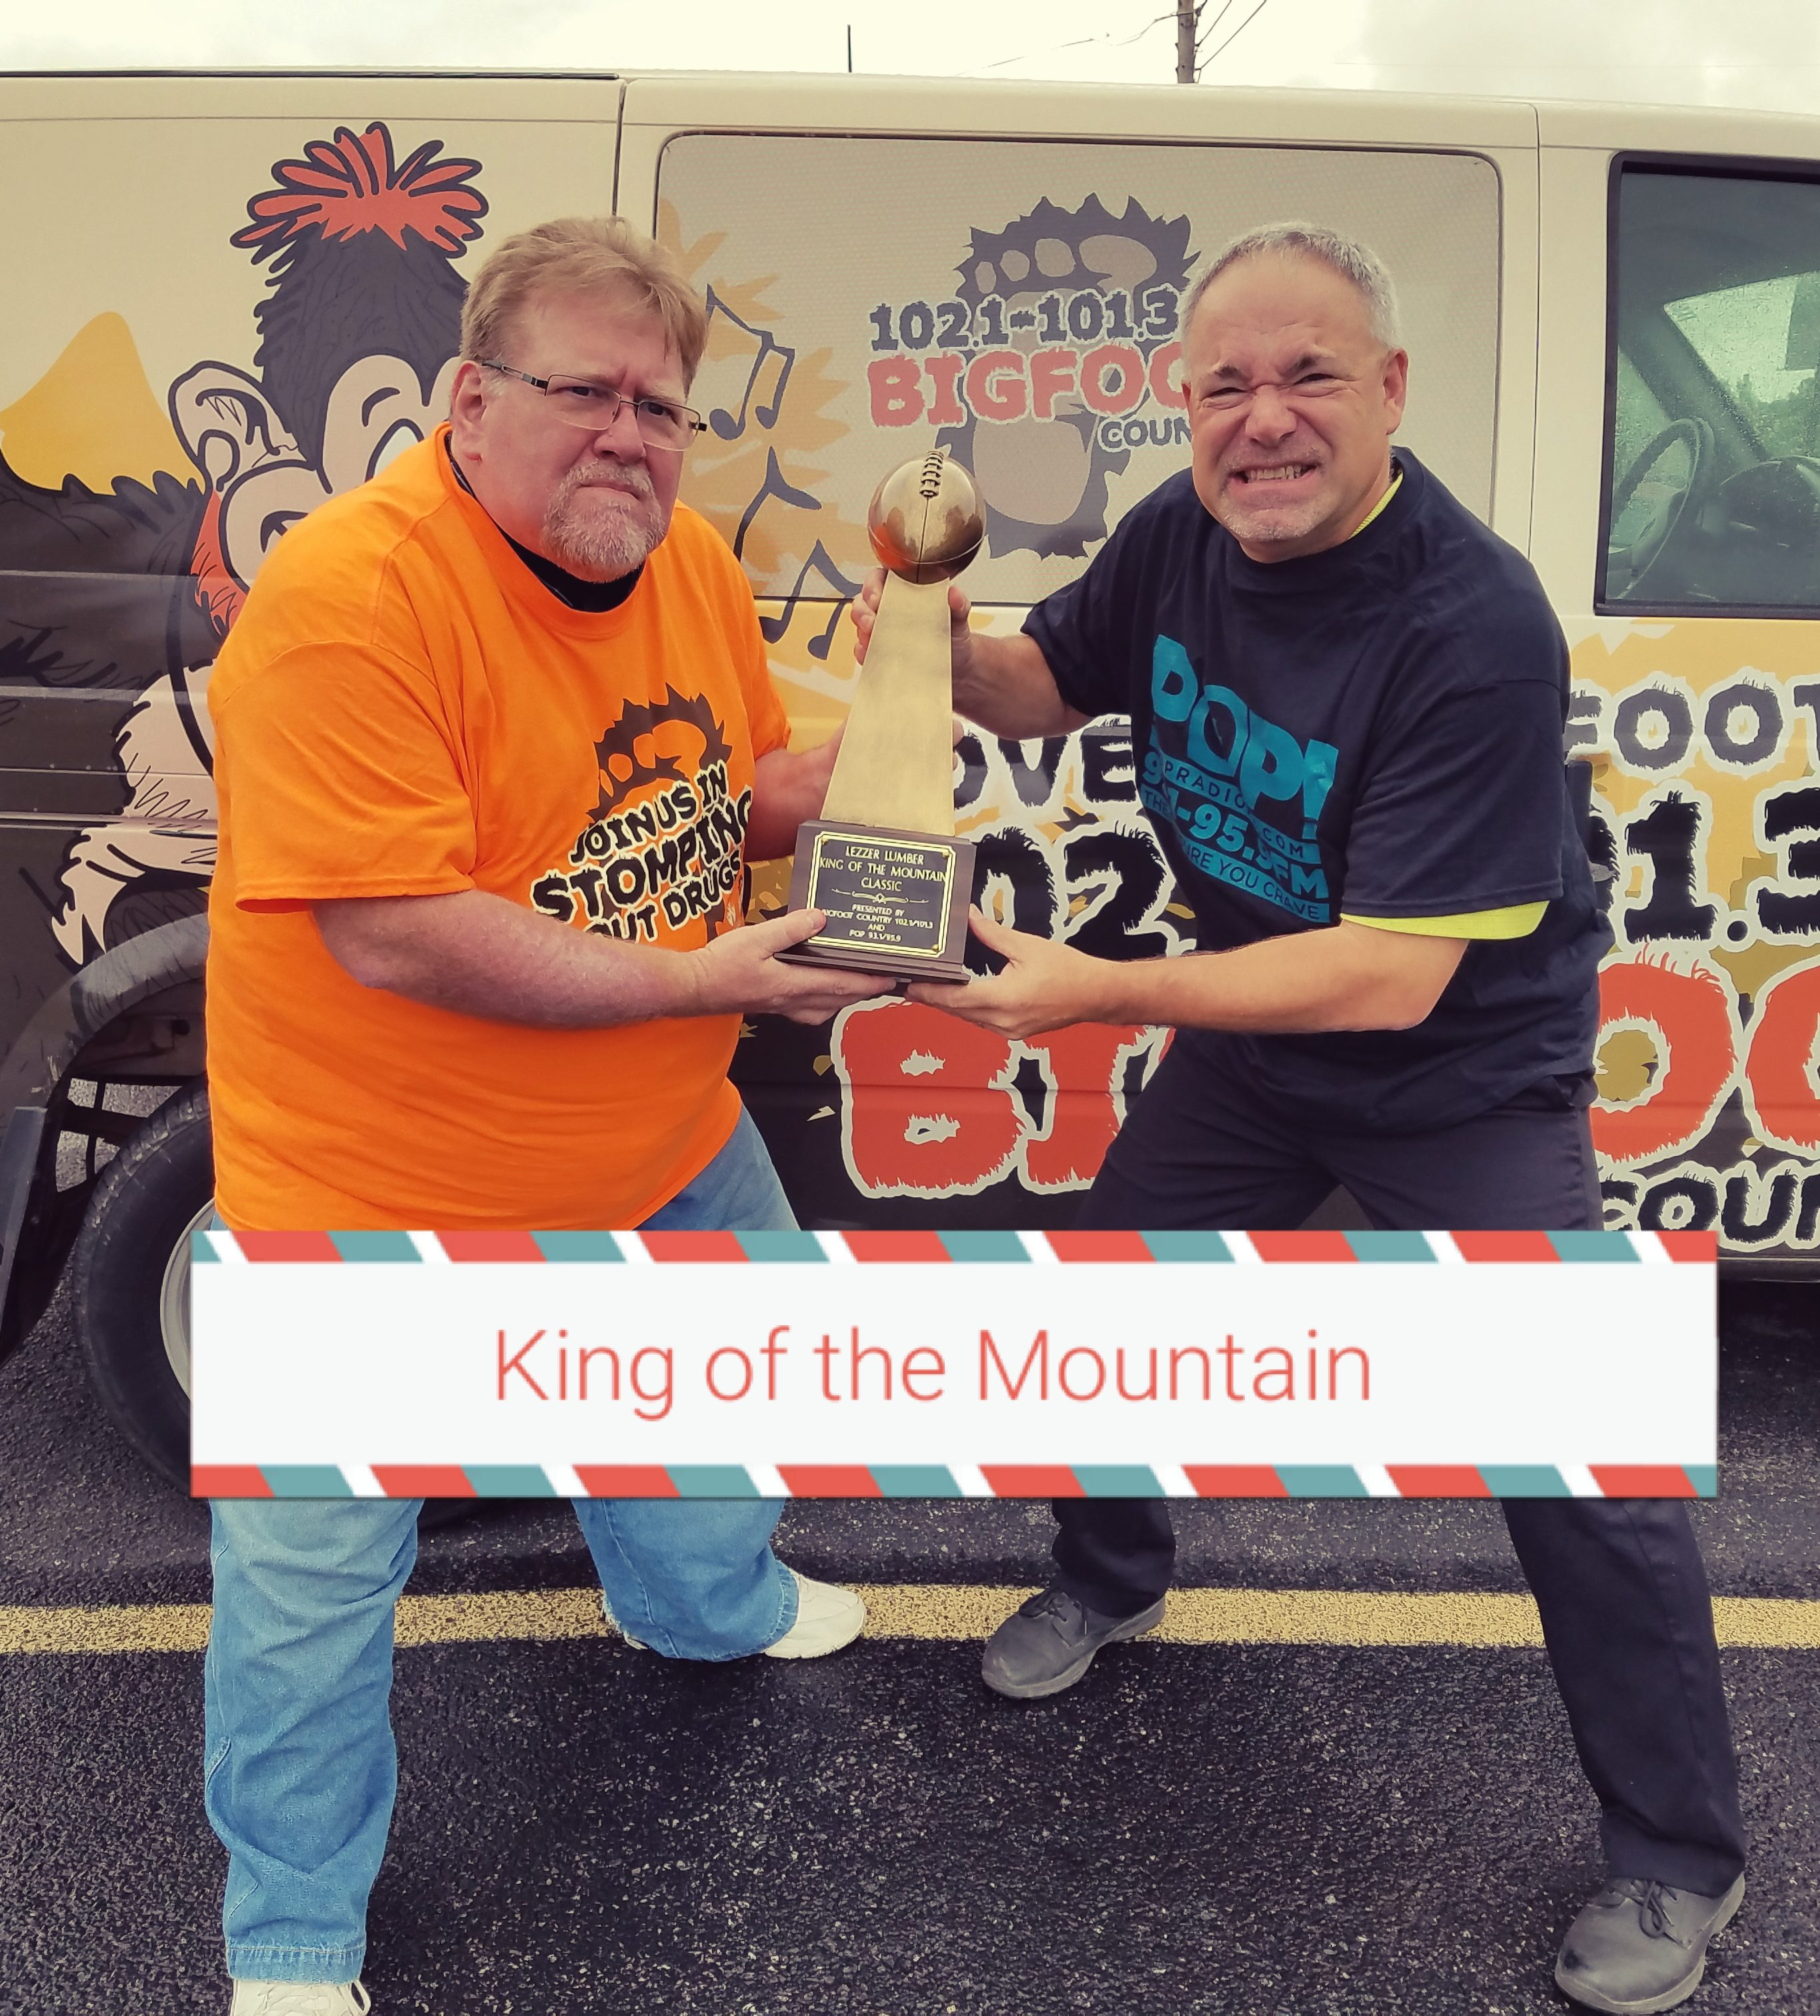 WHO WILL BE KING OF THE MOUNTAIN??